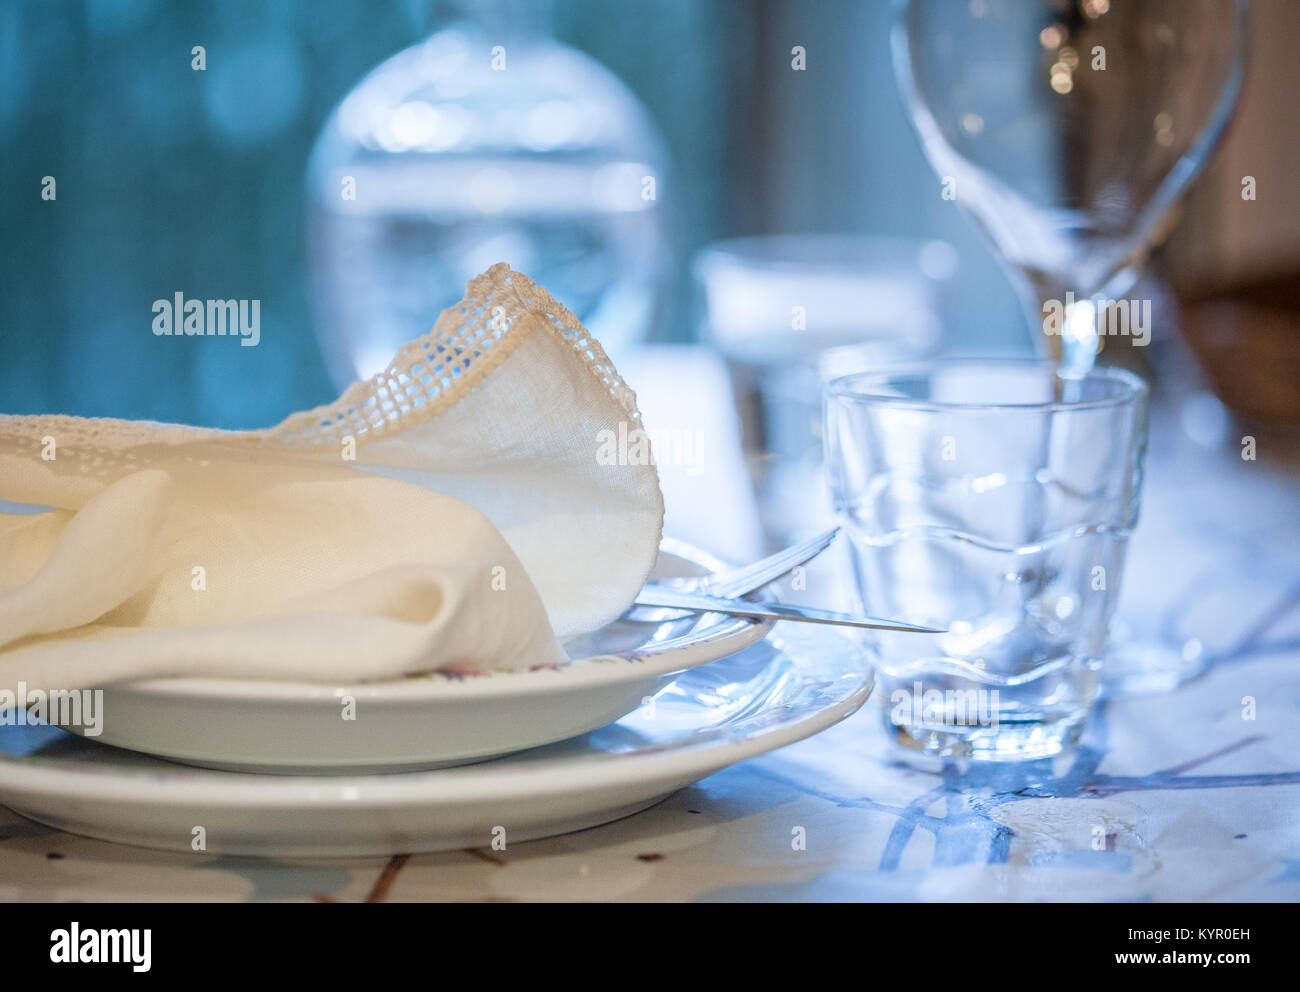 Elegant table set for dinning in a summer with white porcelain dishes, white vintage lace napkin and glassware - Stock Image